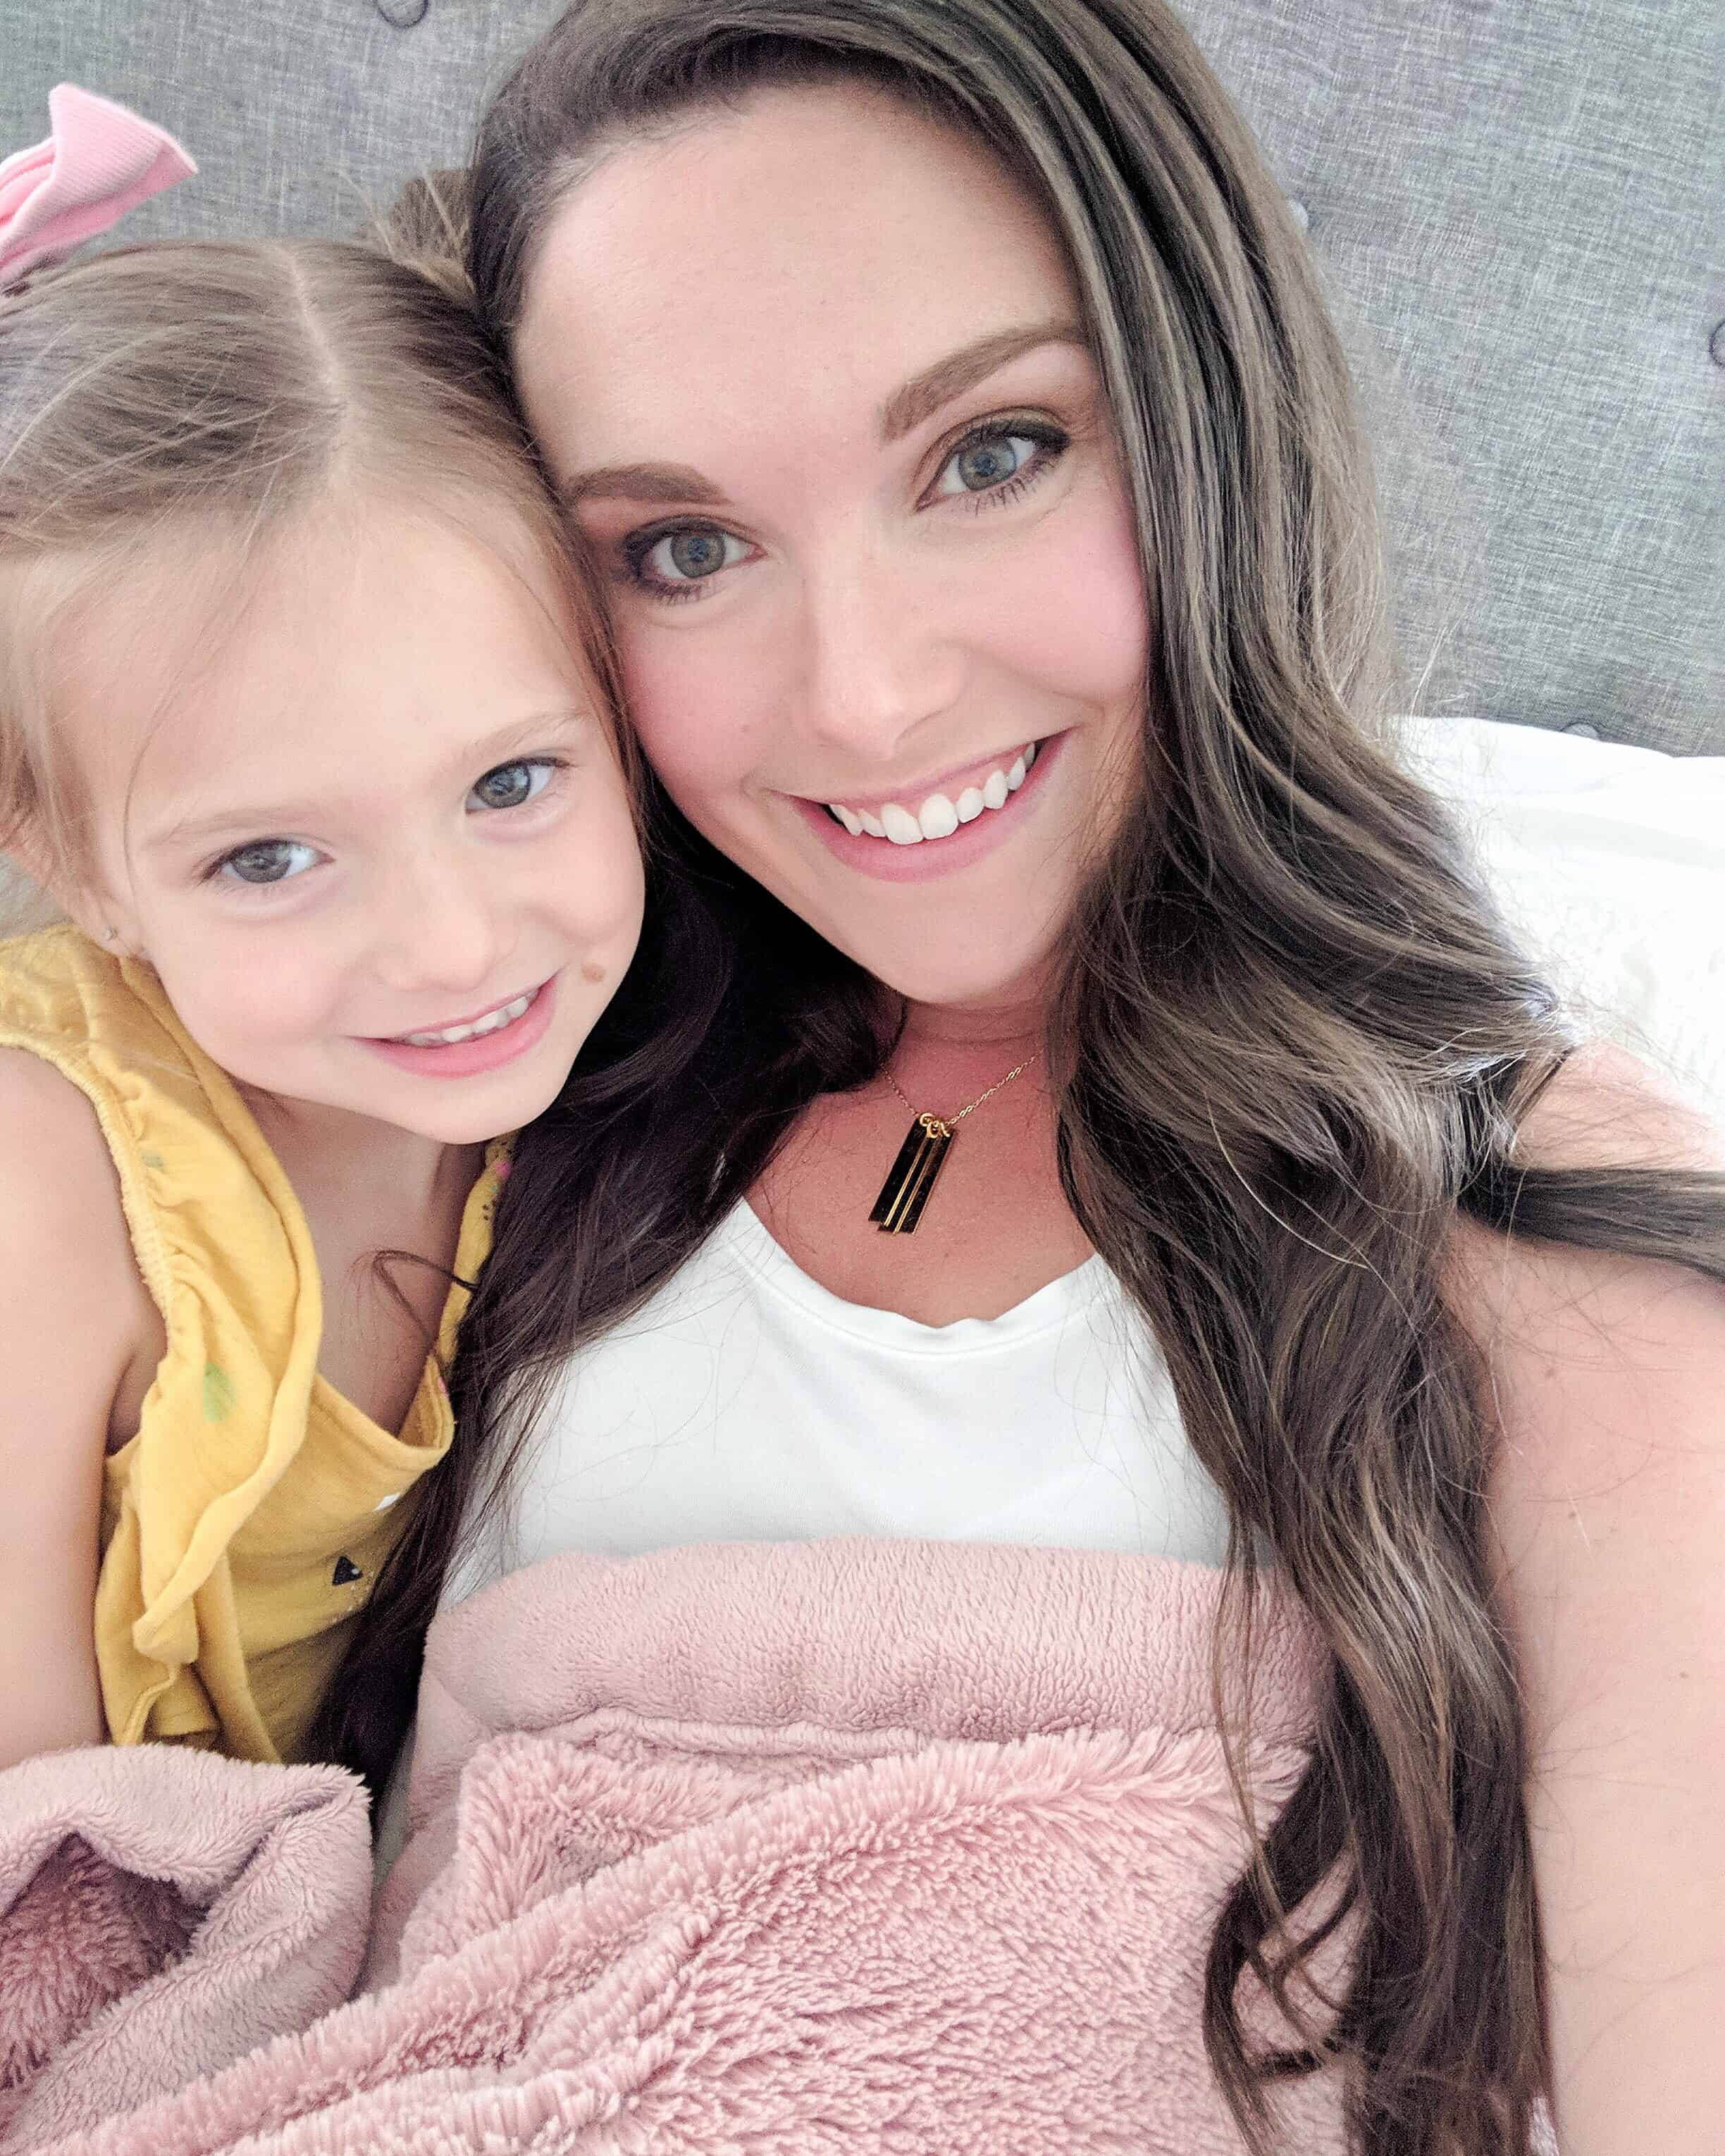 selfie of a mom with toddler girl